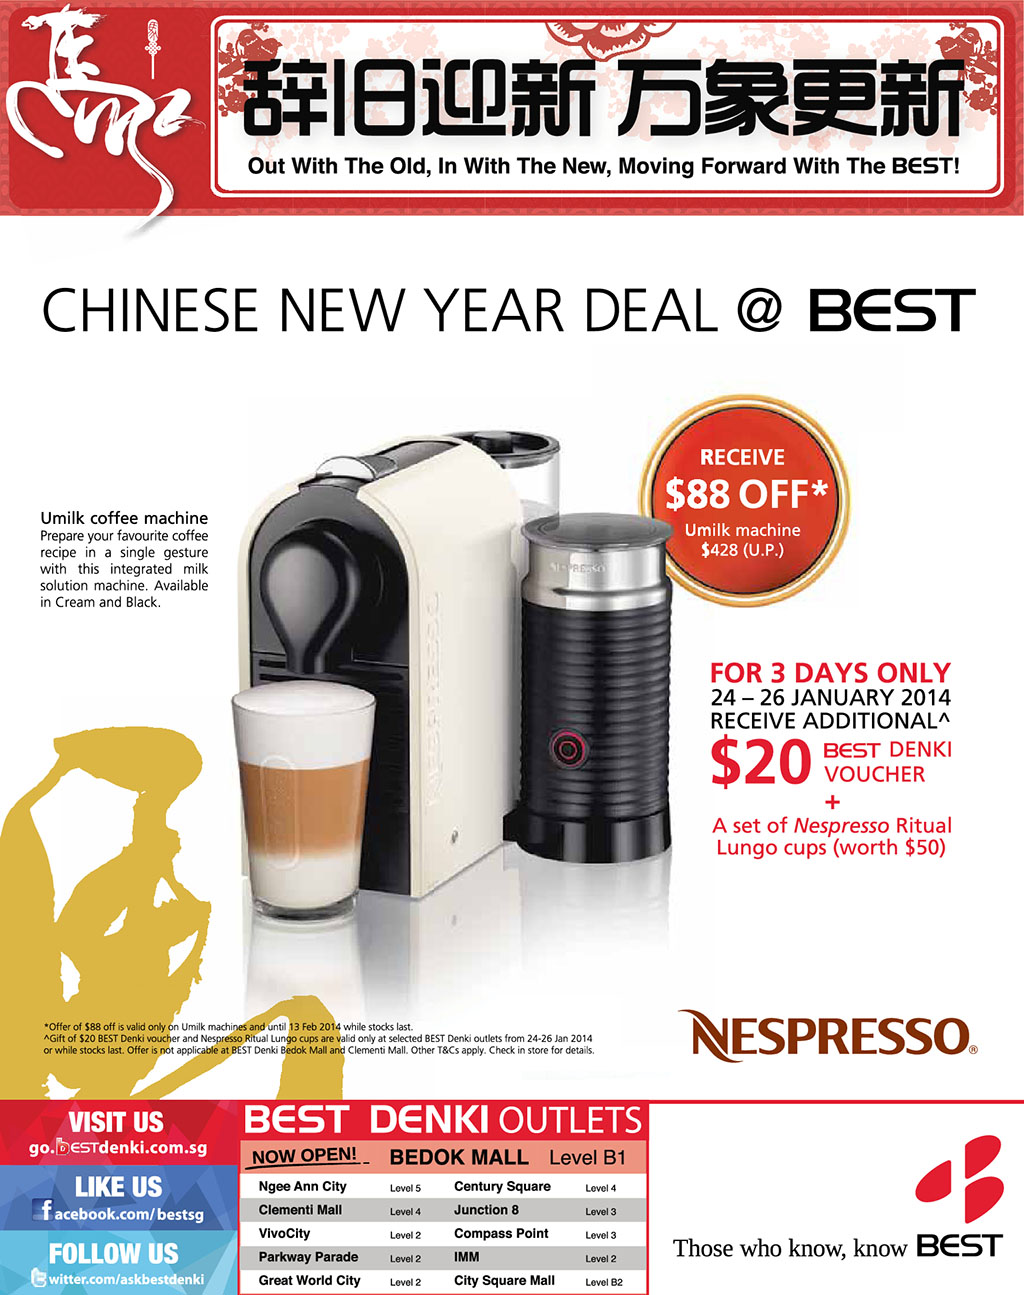 nespresso 88 off umilk coffee machine best denki outlets january 2014 promotion great deals. Black Bedroom Furniture Sets. Home Design Ideas